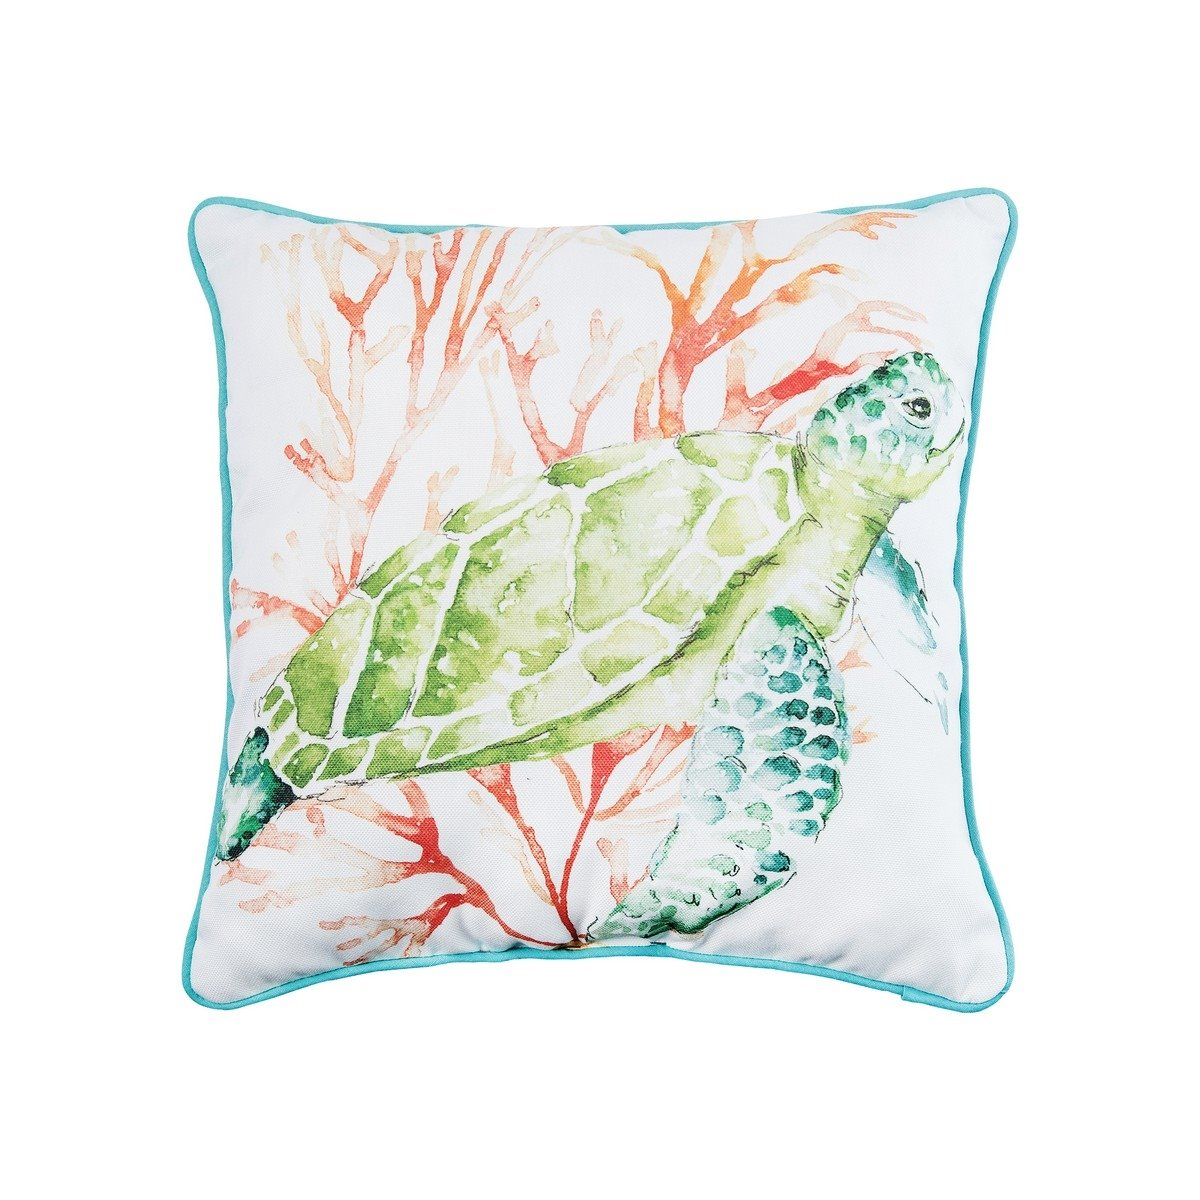 Colorful Sea Turtle Printed Pillow